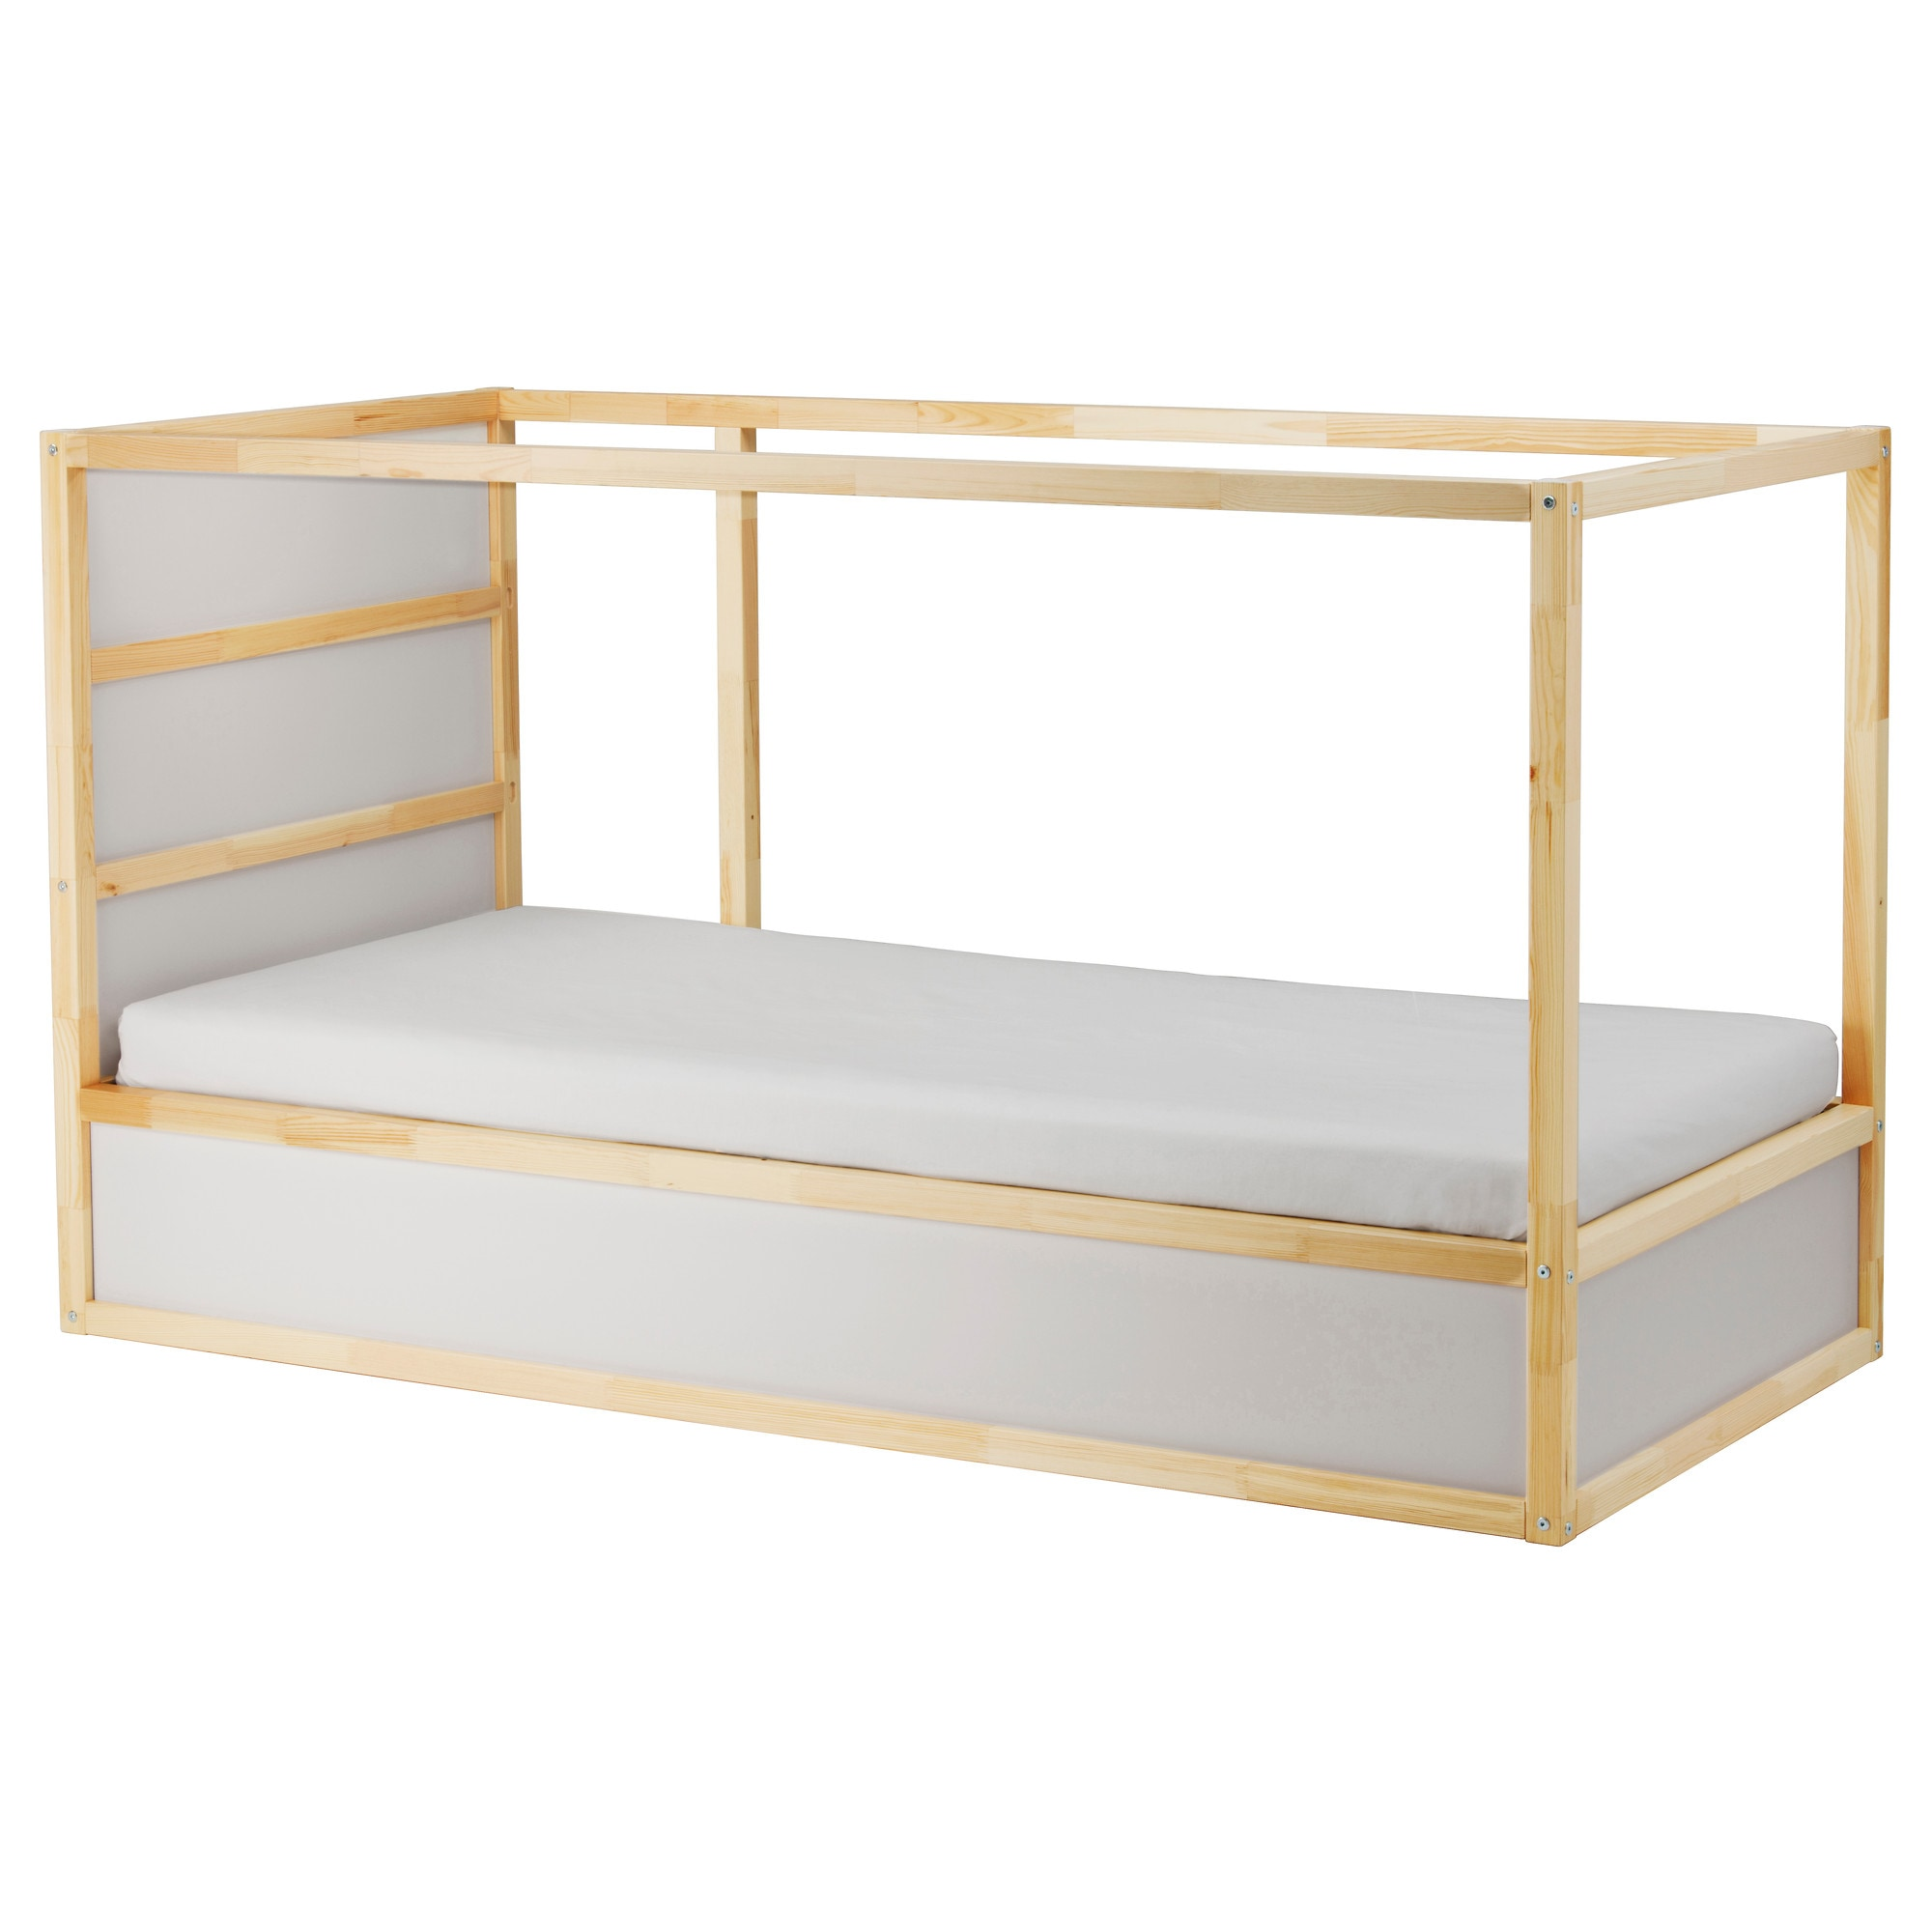 Pin ikea kids loft bed on pinterest for Ikea kids loft bed